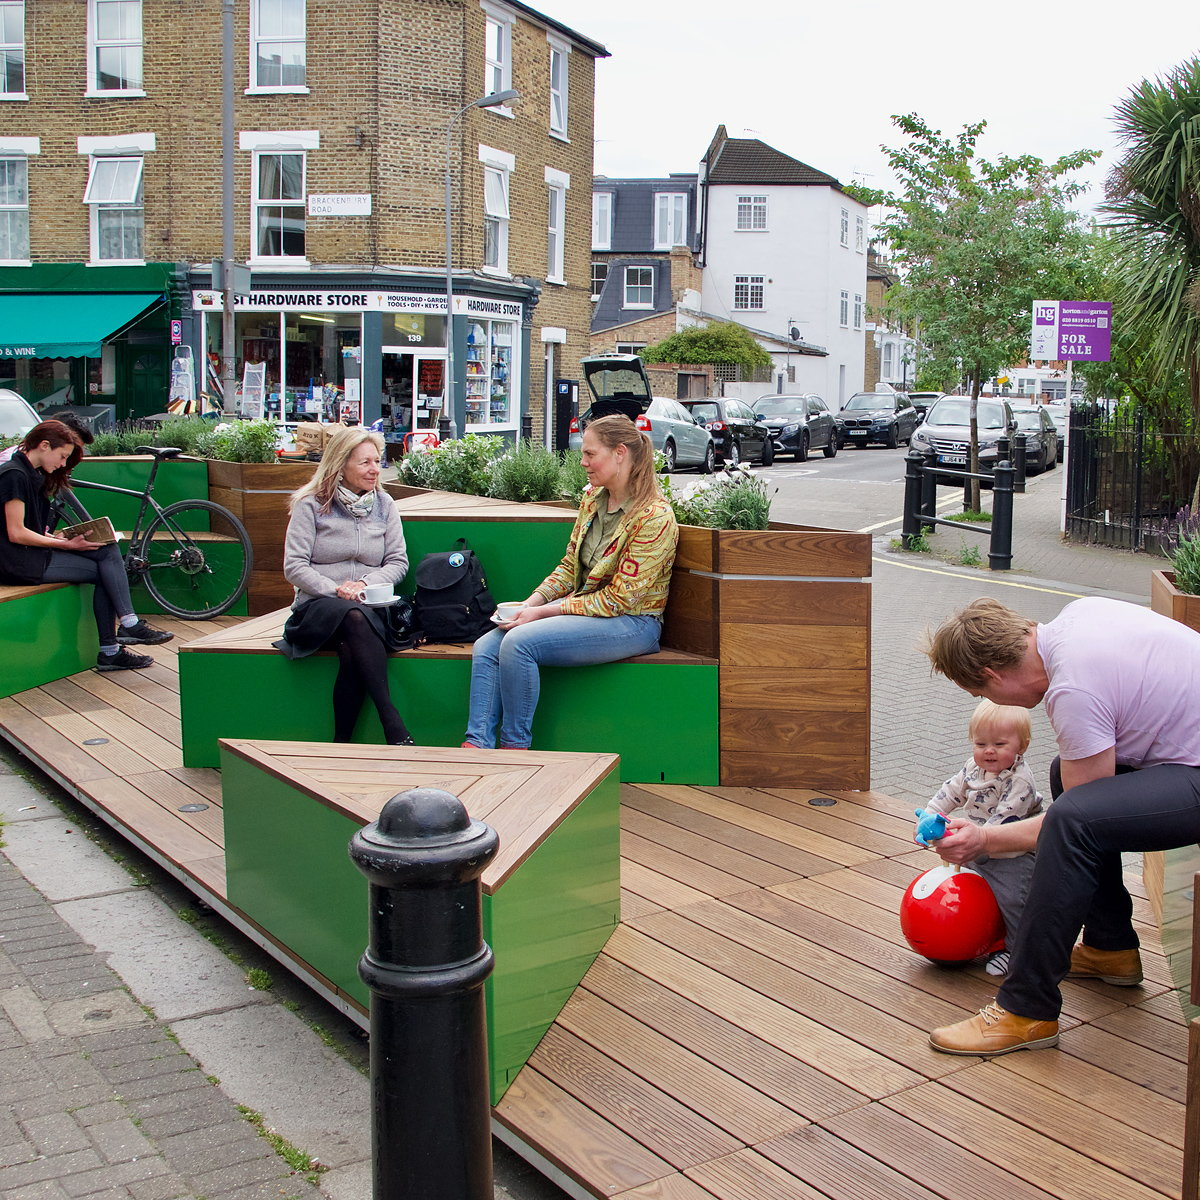 Cyclehoop Parklet Shortlisted for 2017 Healthy Streets Awards